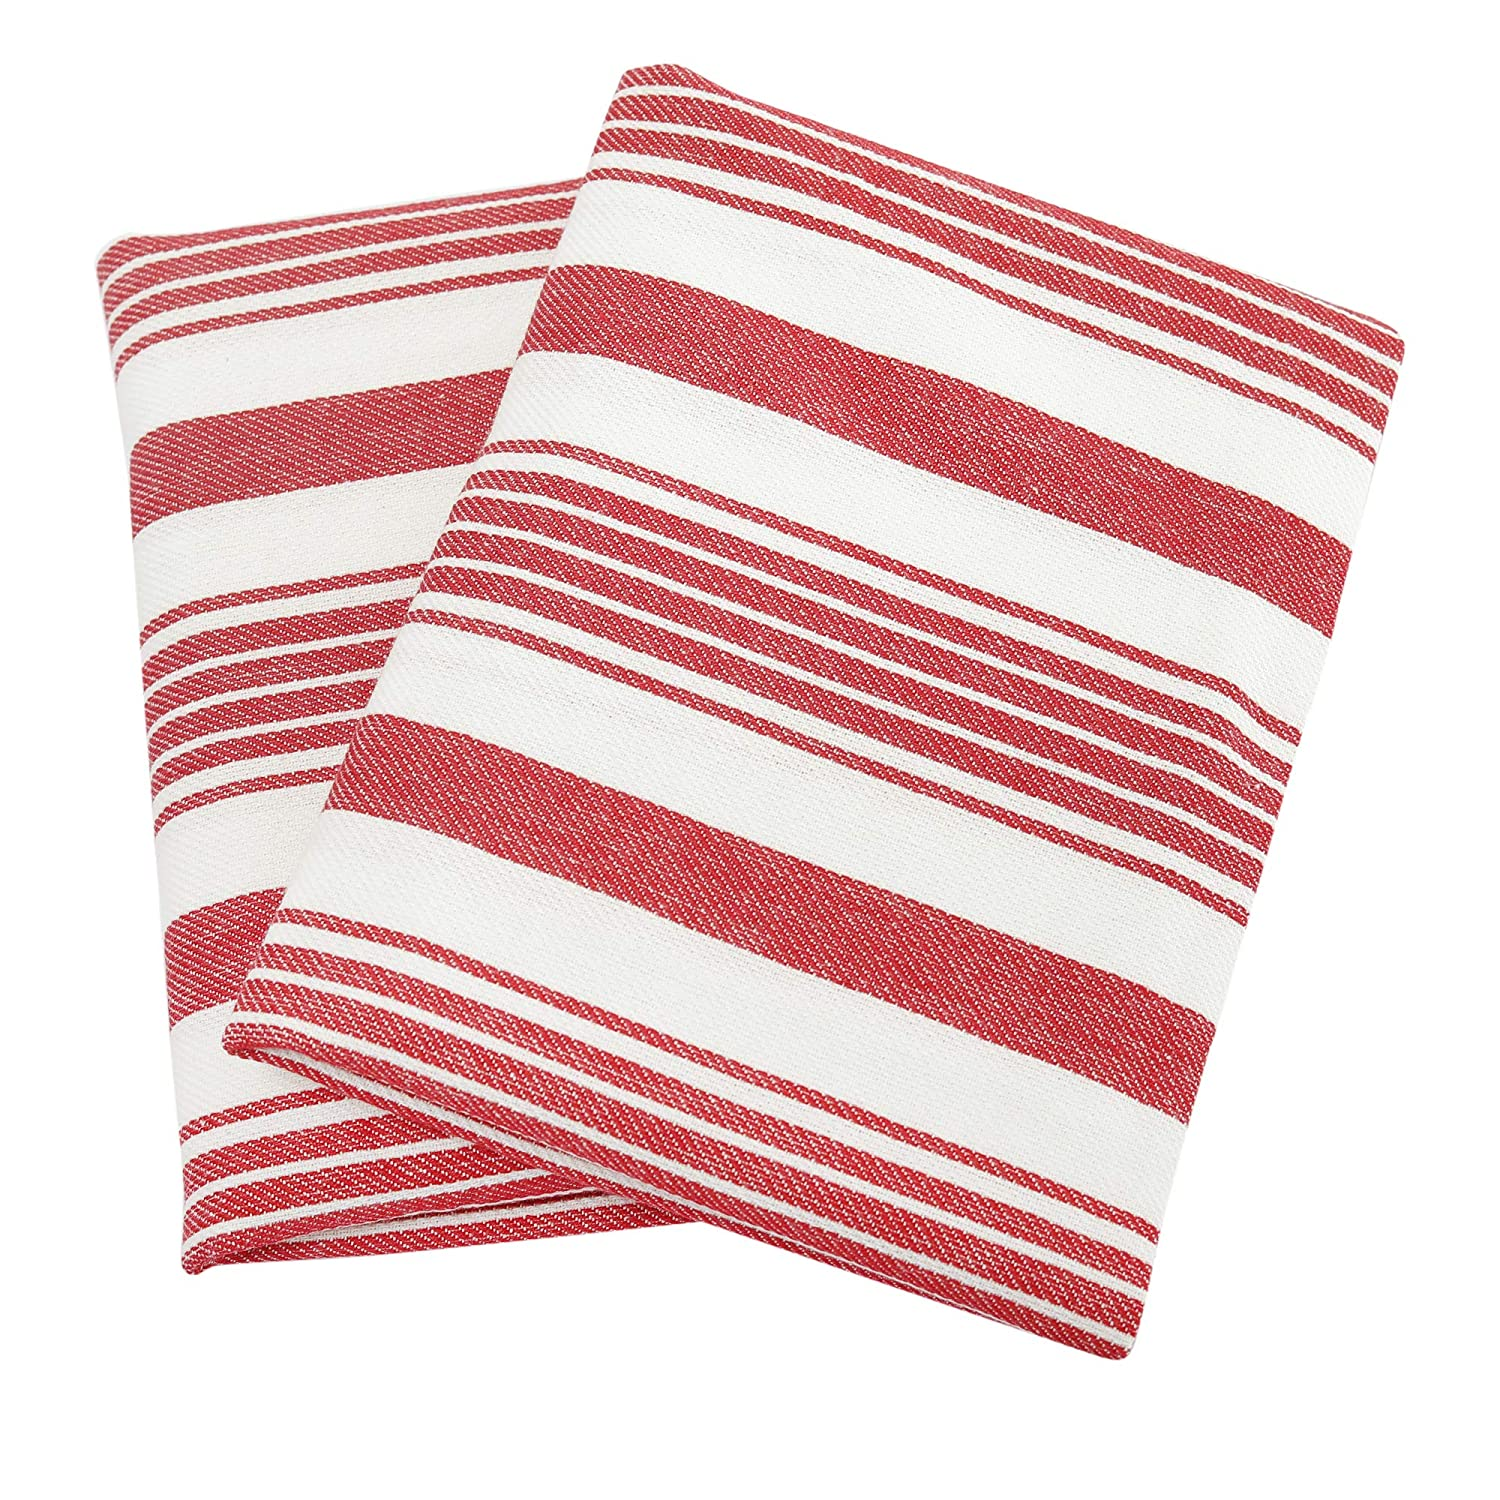 """Set of 2 Kitchen Towels, Stripes, 100% Cotton, Eco Friendly and Safe, Suitable for all Kitchens, Poppy Red/White Color, Size 18""""X26"""" Product of Cote De Amor"""